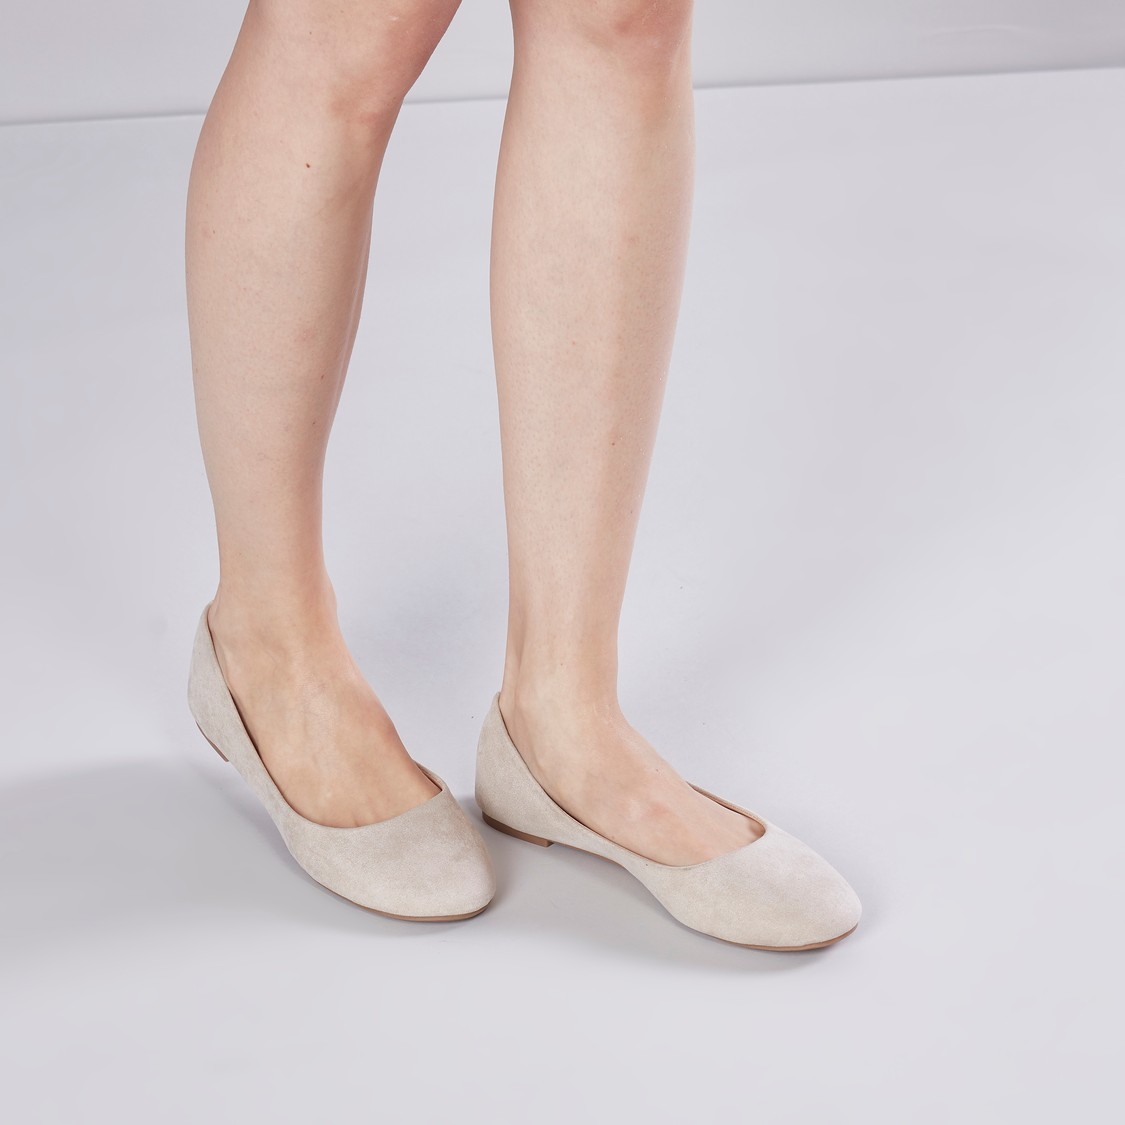 Plain Ballerina Shoes with Chequered Footbed